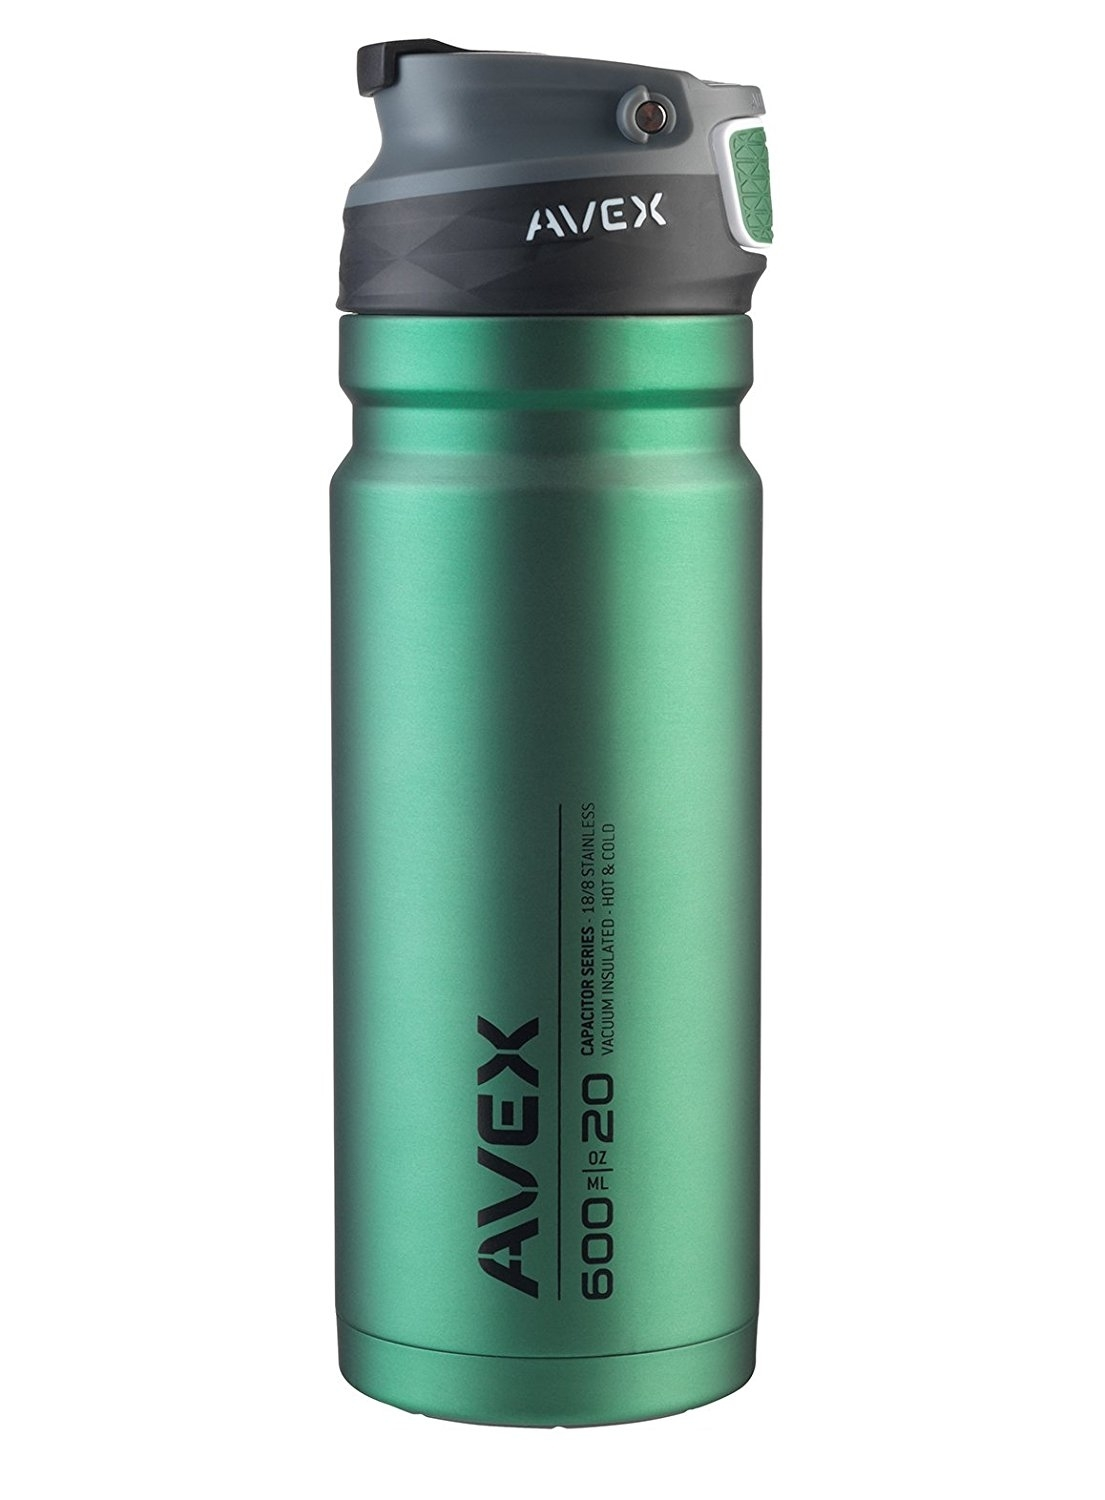 Avex ReCharge Autoseal Stainless Steel Tumbler, 600 mL/20 oz - Green